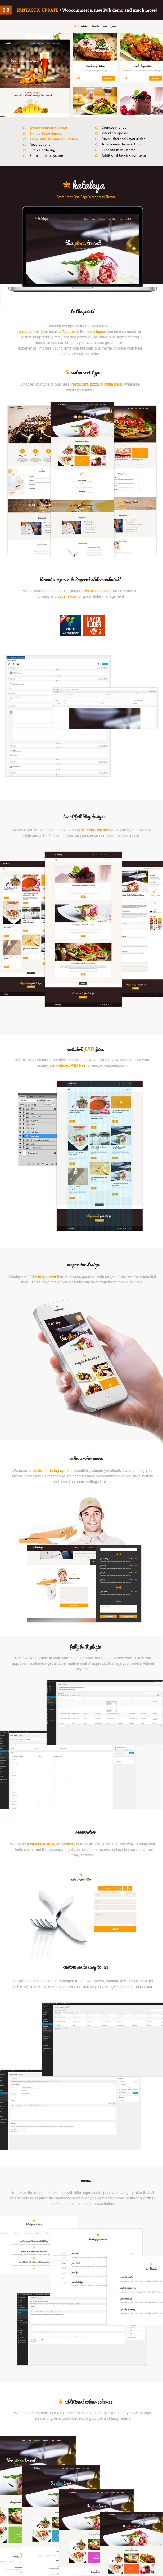 Kataleya - Restaurant Pizza Coffee WordPress Theme